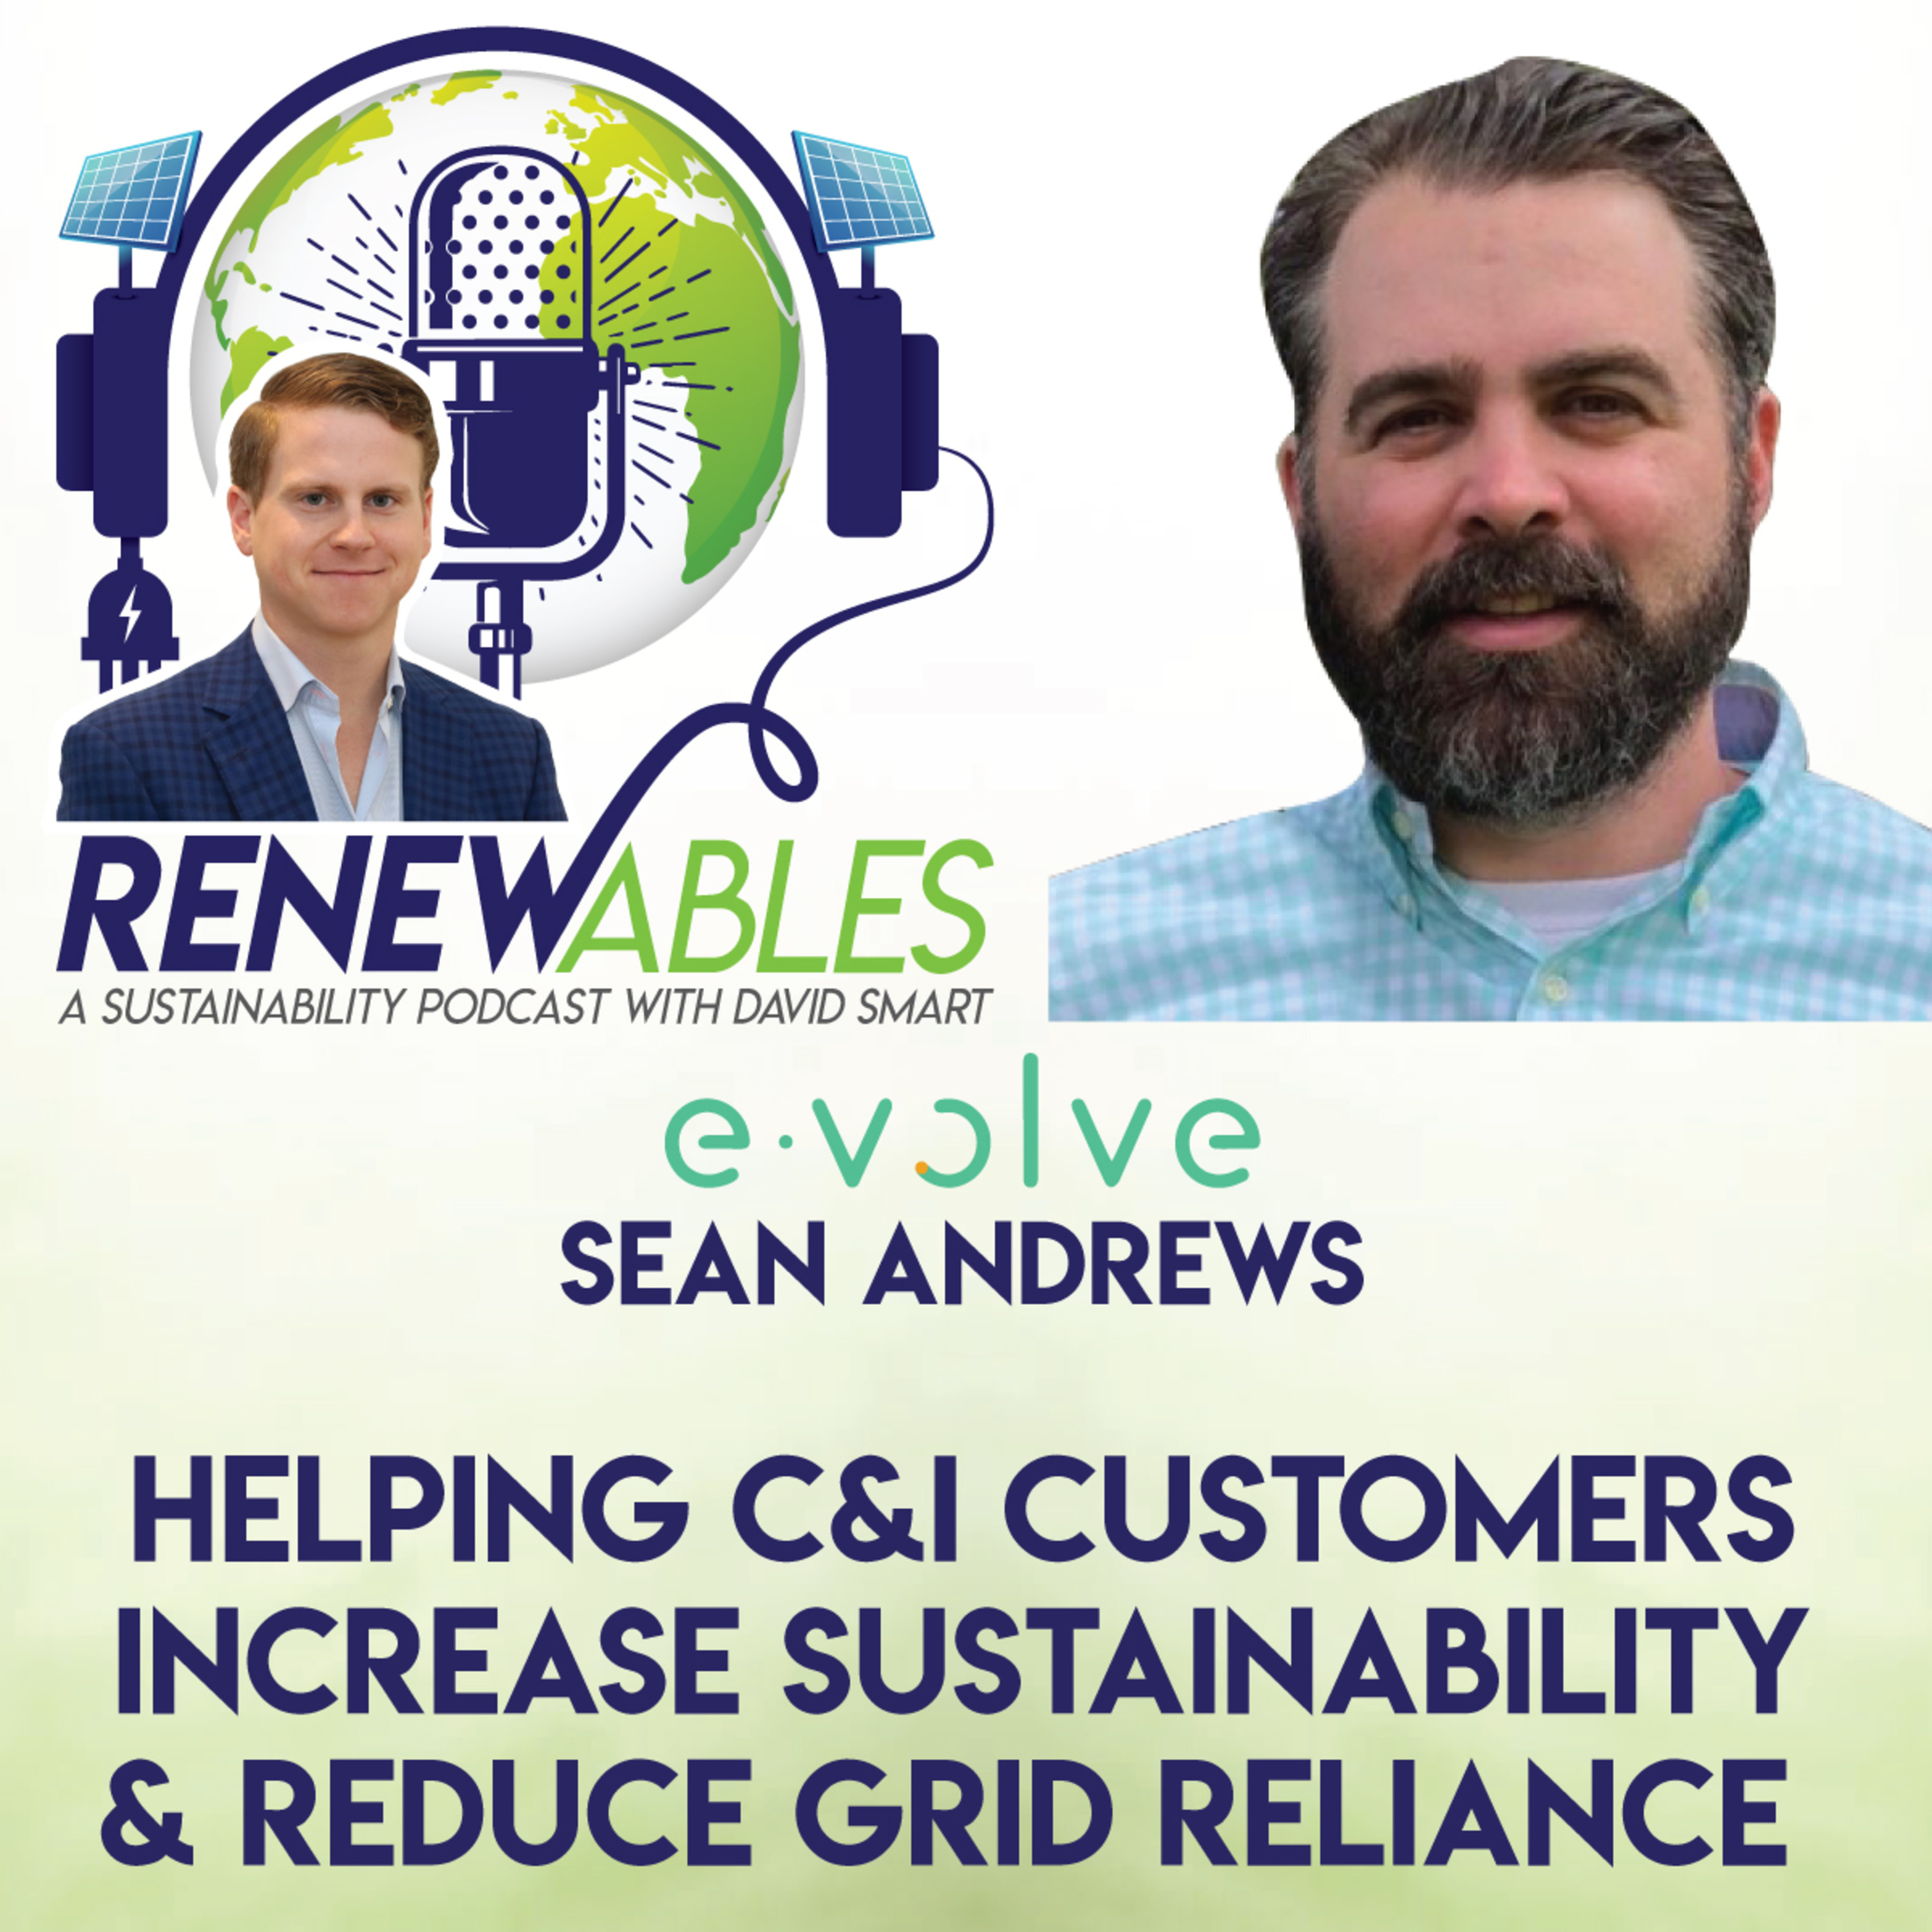 RENEWables Episode 22: Helping C&I Customers Increase Sustainability & Reduce Grid Reliance